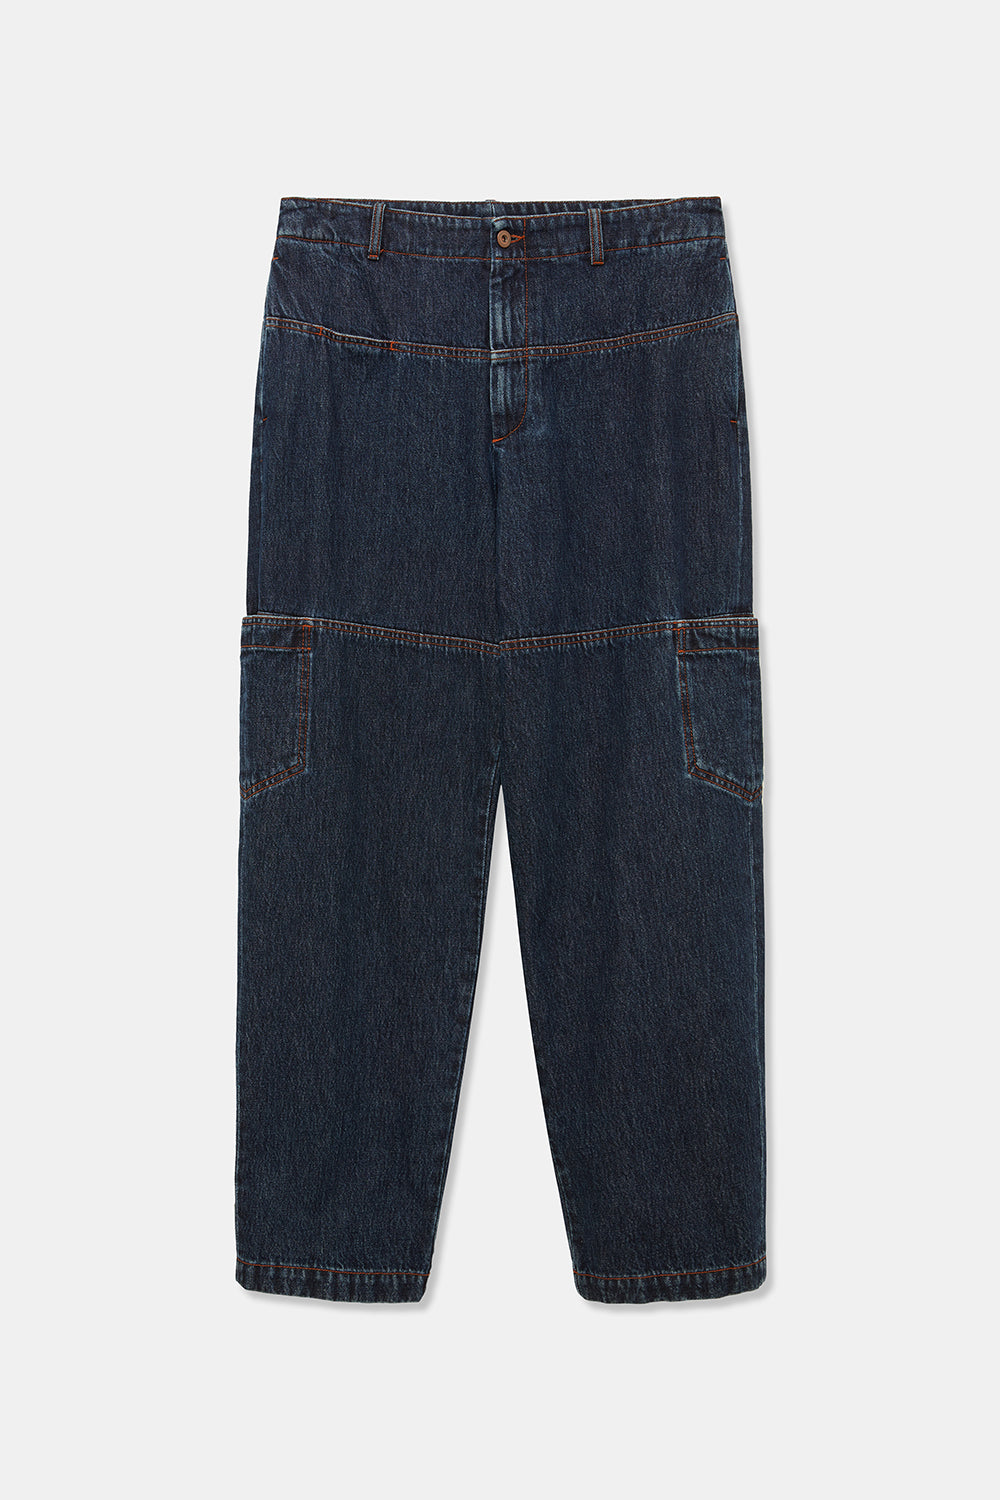 TEMARA DENIM WORKWEAR TROUSER